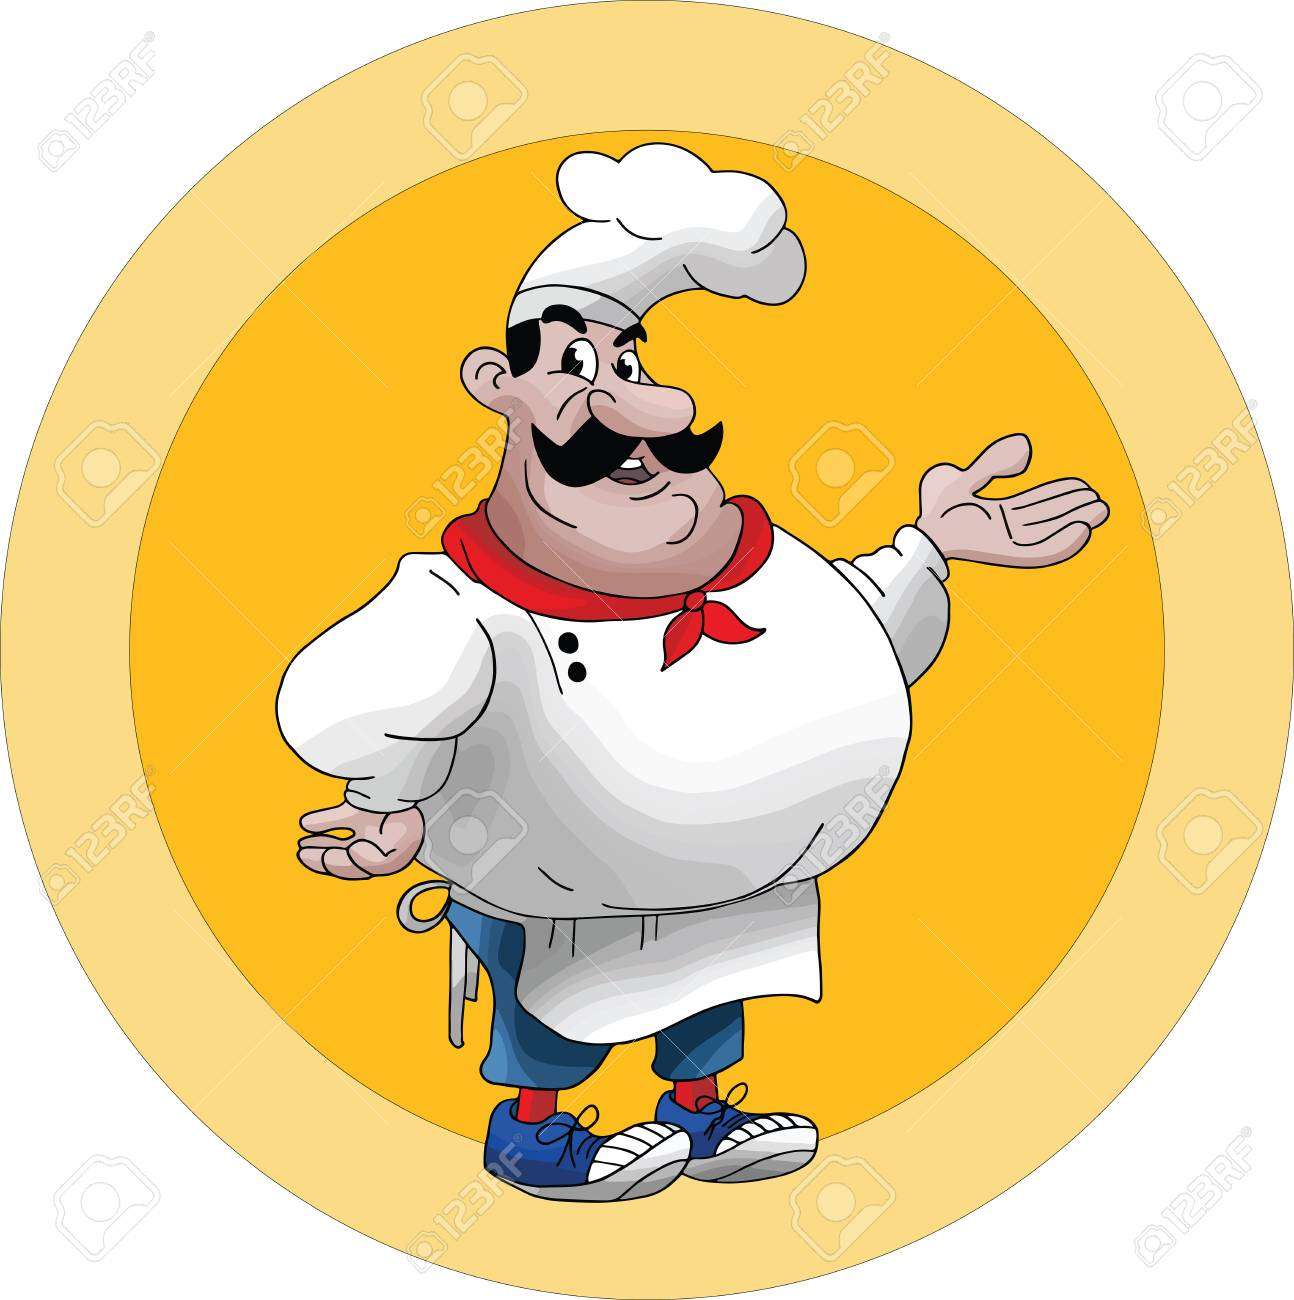 Cartoon Chef giving his favorite meal recipes vector illustration